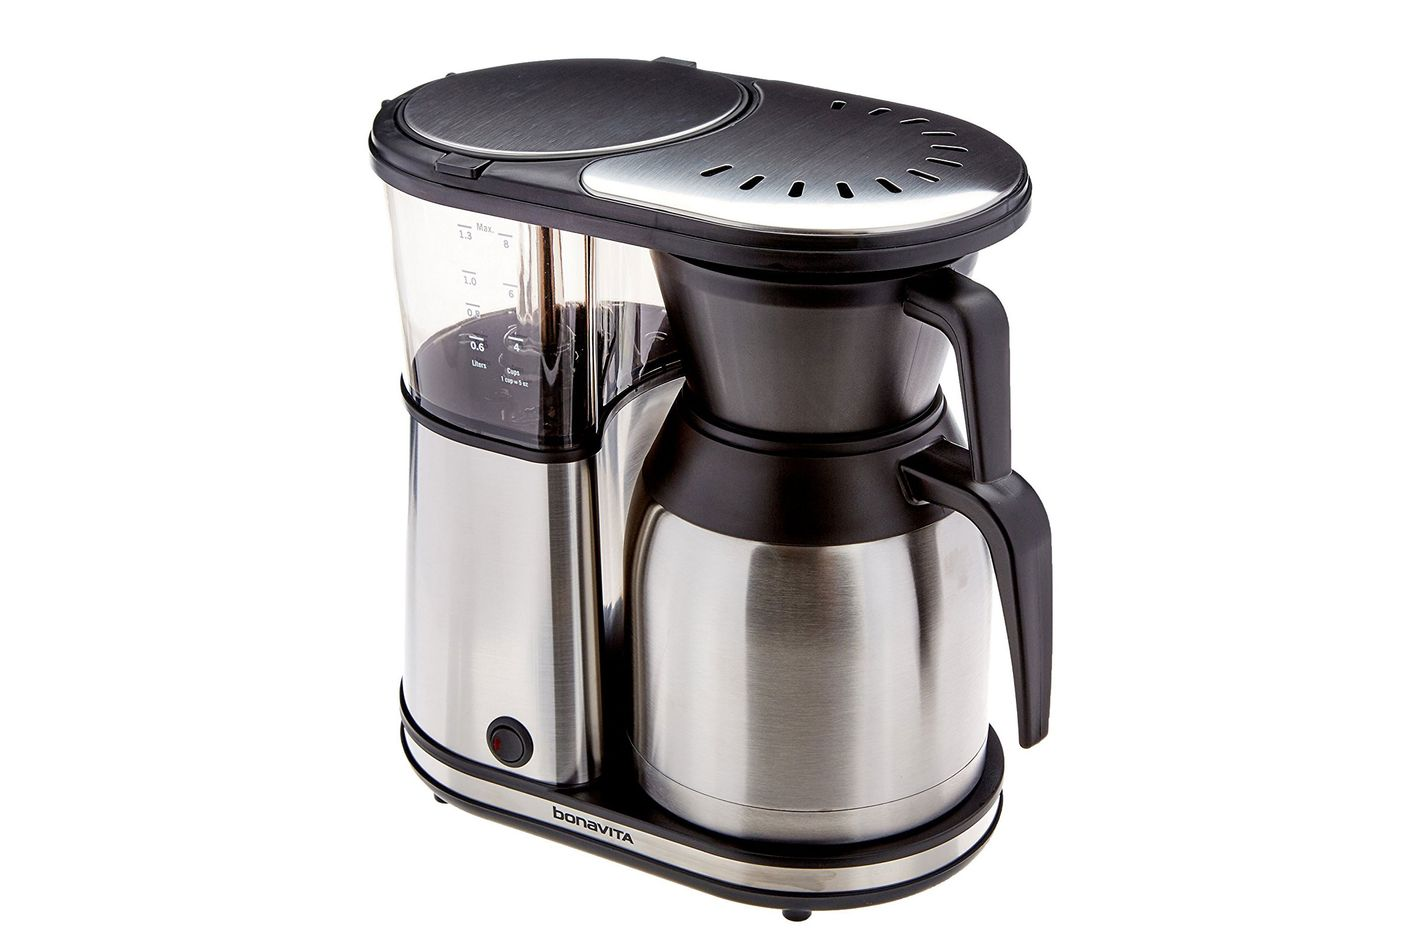 Bonavita Coffee Maker. Bonavita Bv1800 8cup Coffee Maker. Bonavita Bv1800 8 Cup Coffee Maker ...